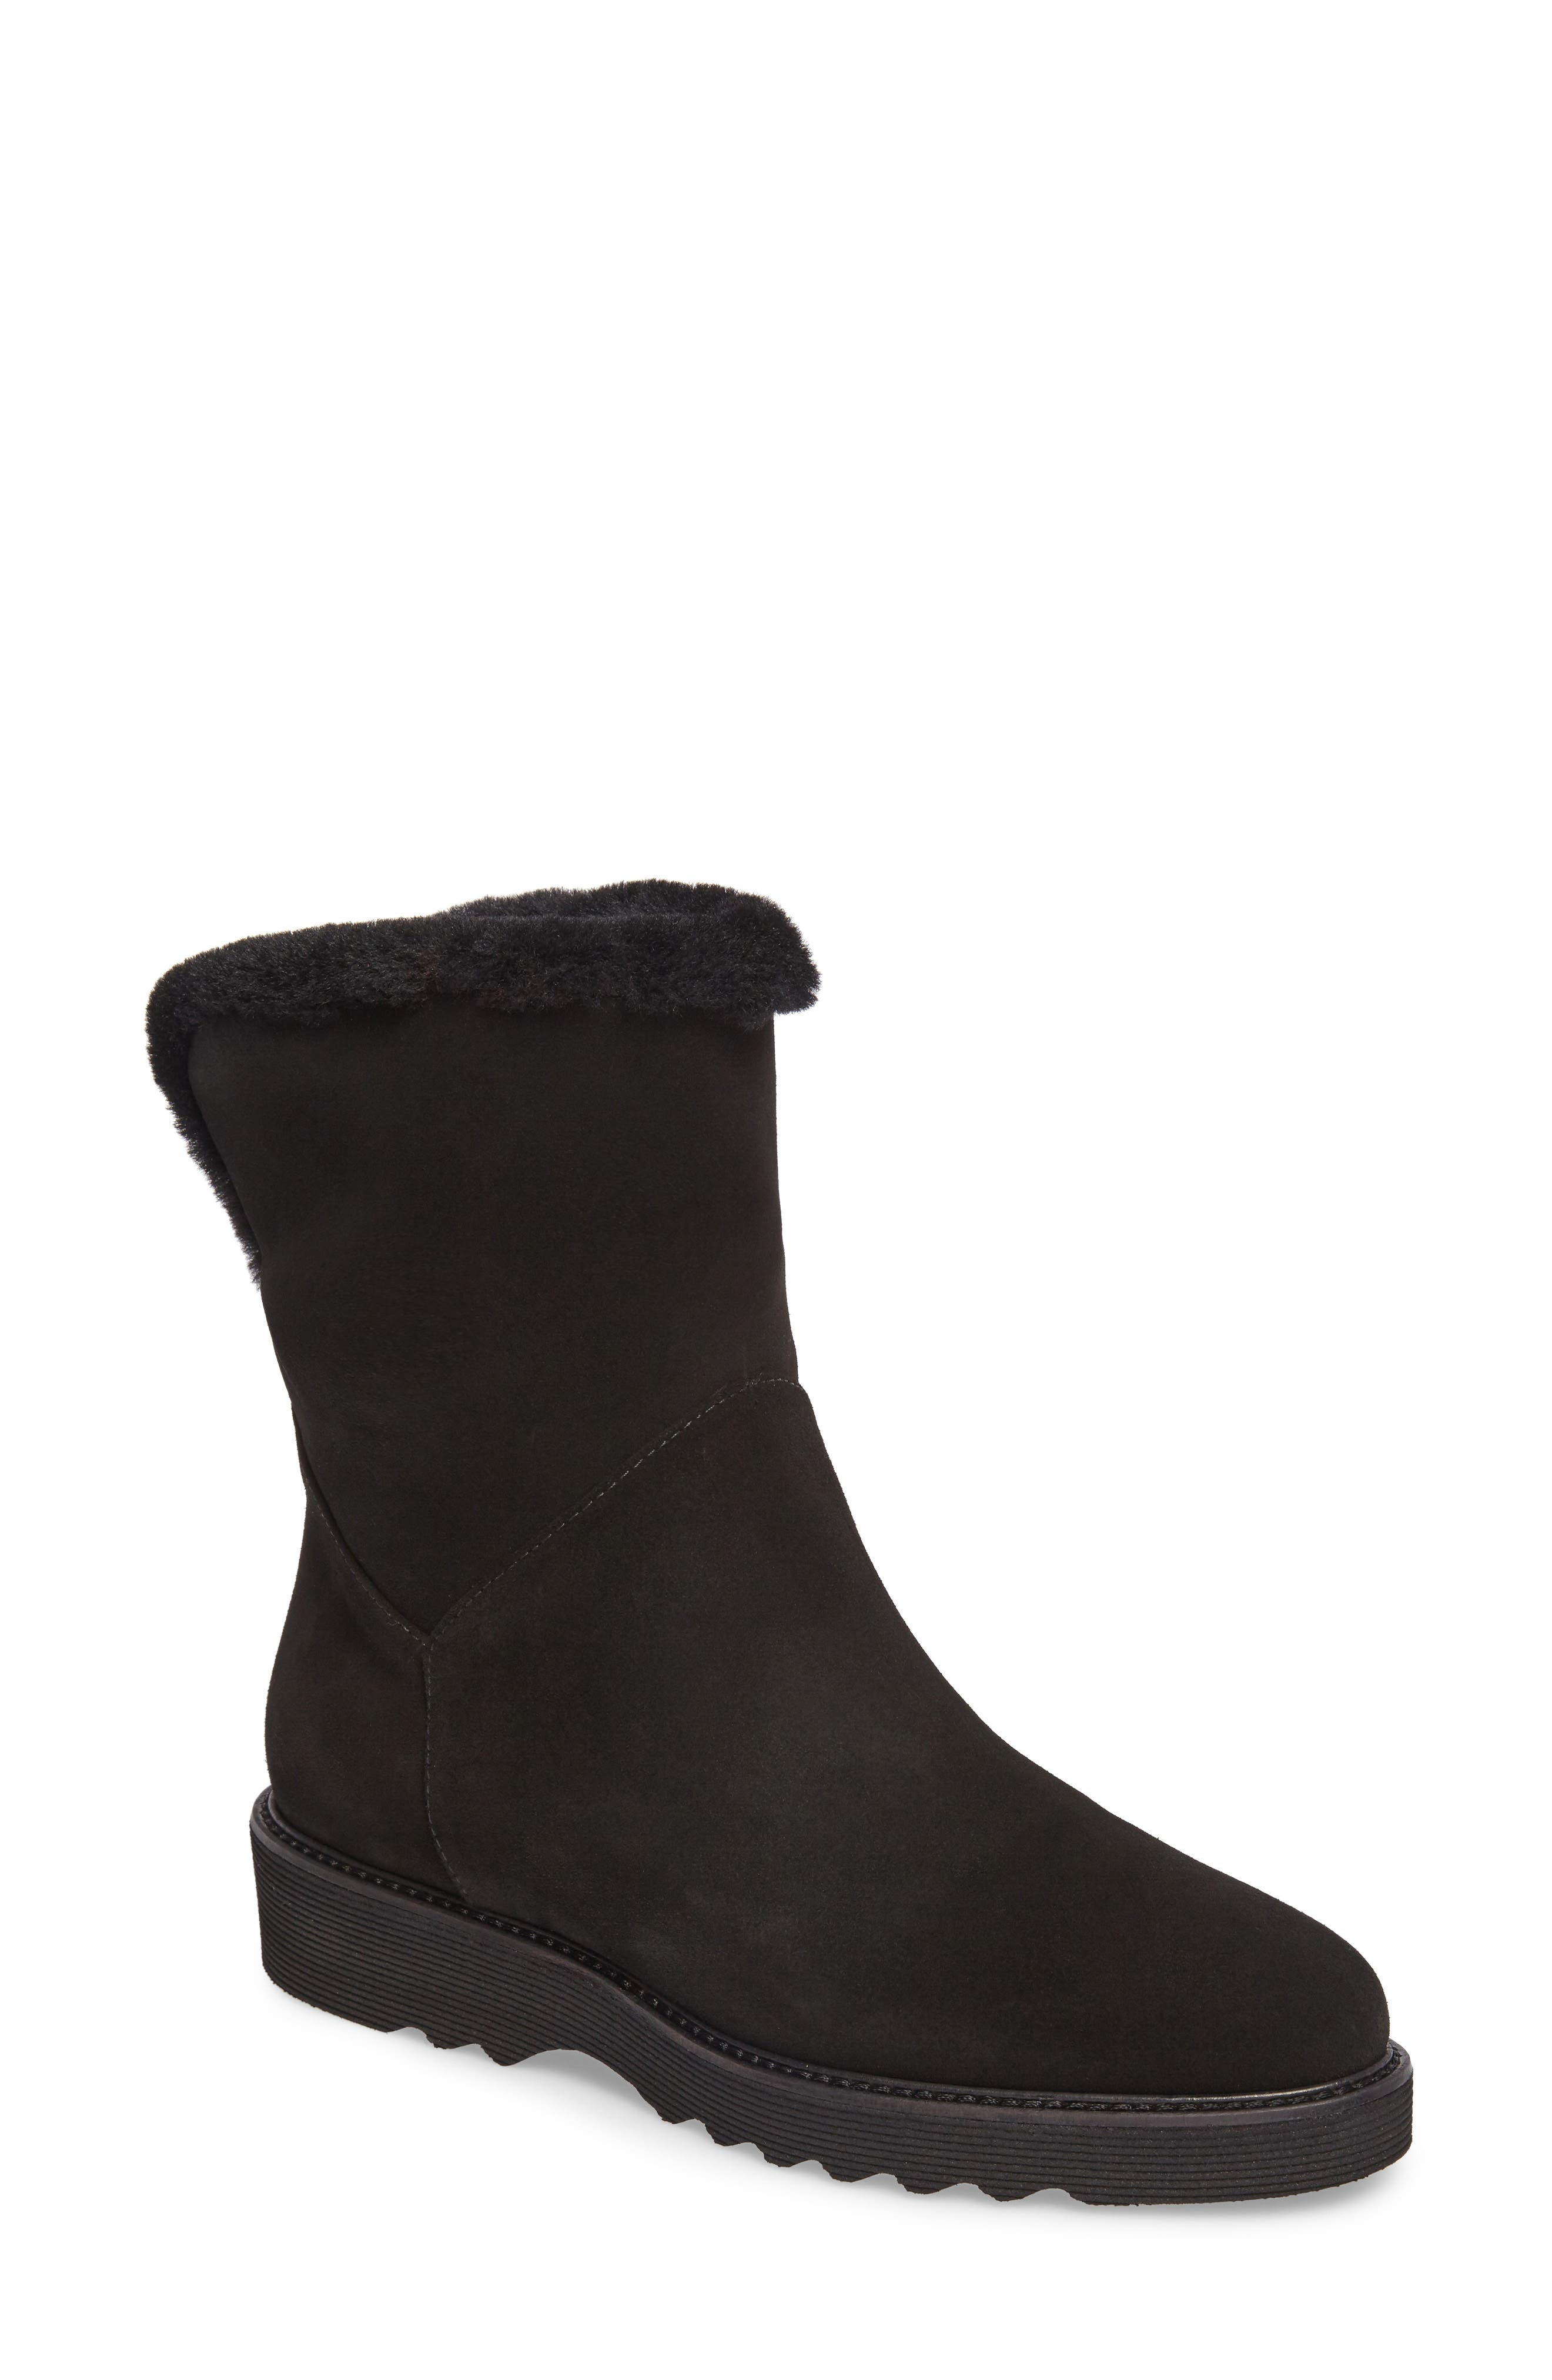 Kimberly Weatherproof Genuine Shearling Bootie,                             Main thumbnail 1, color,